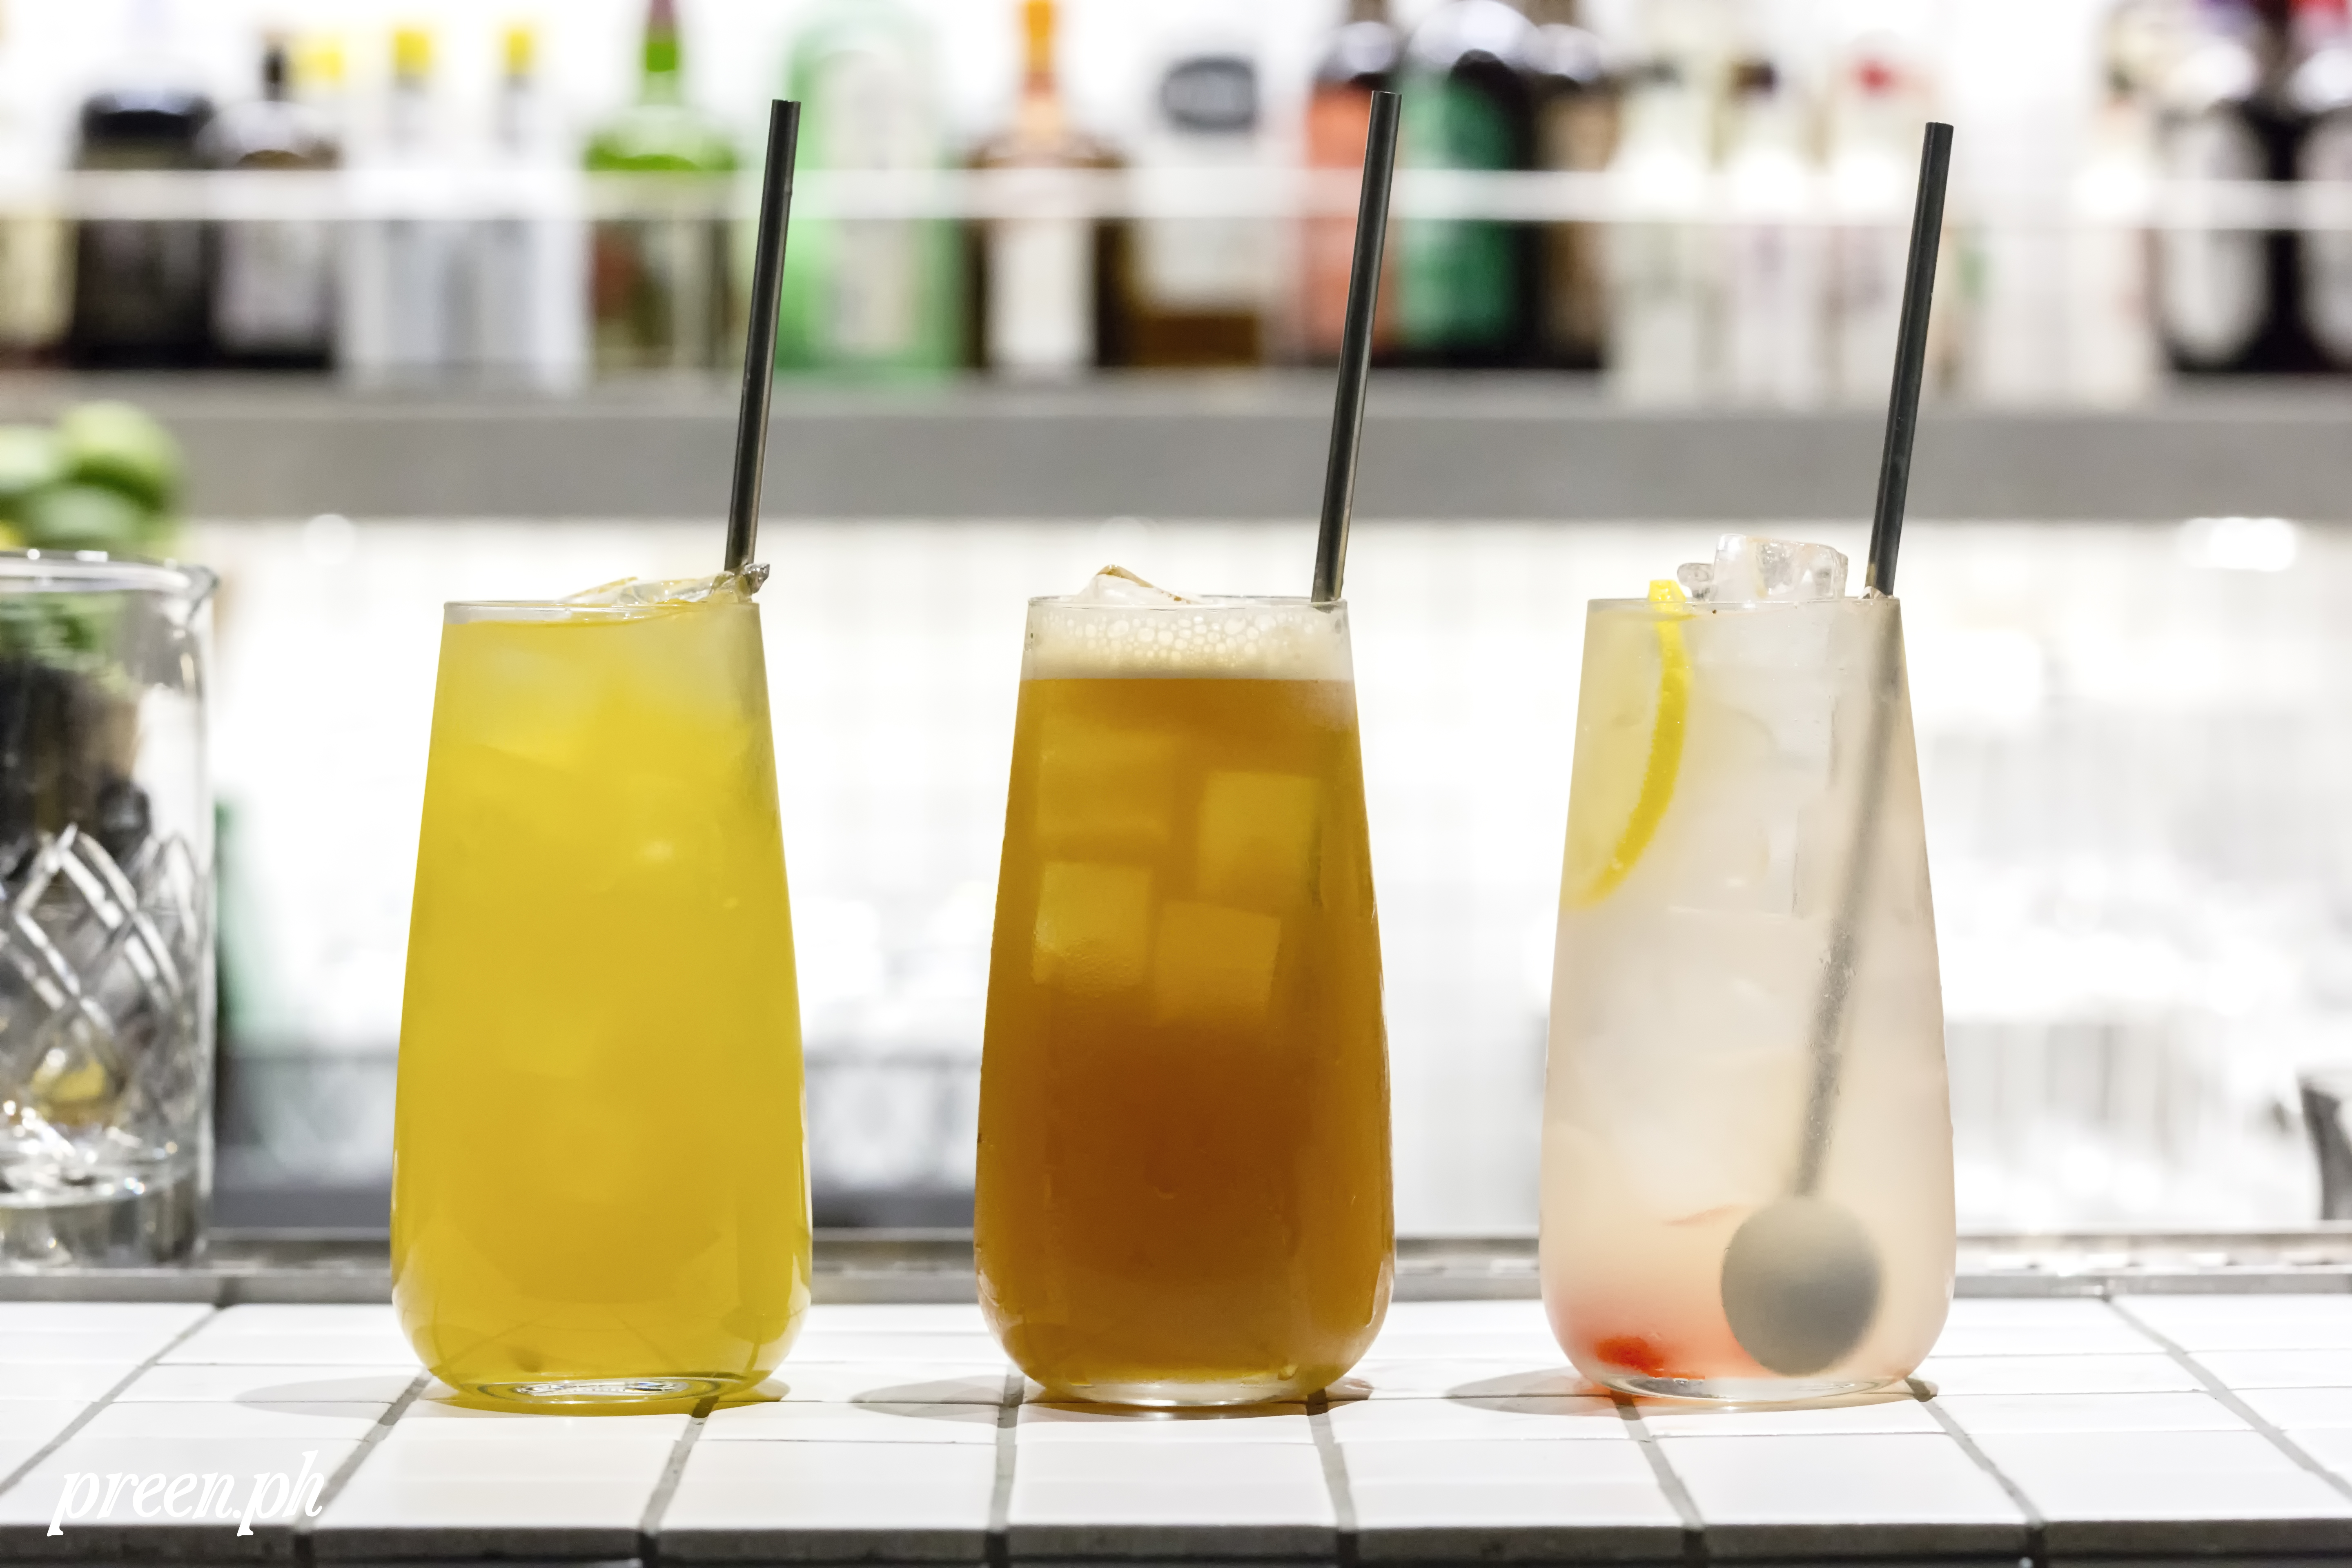 Left to right: Donkey Punch, House Blend Iced Tea, and Cherry Pop